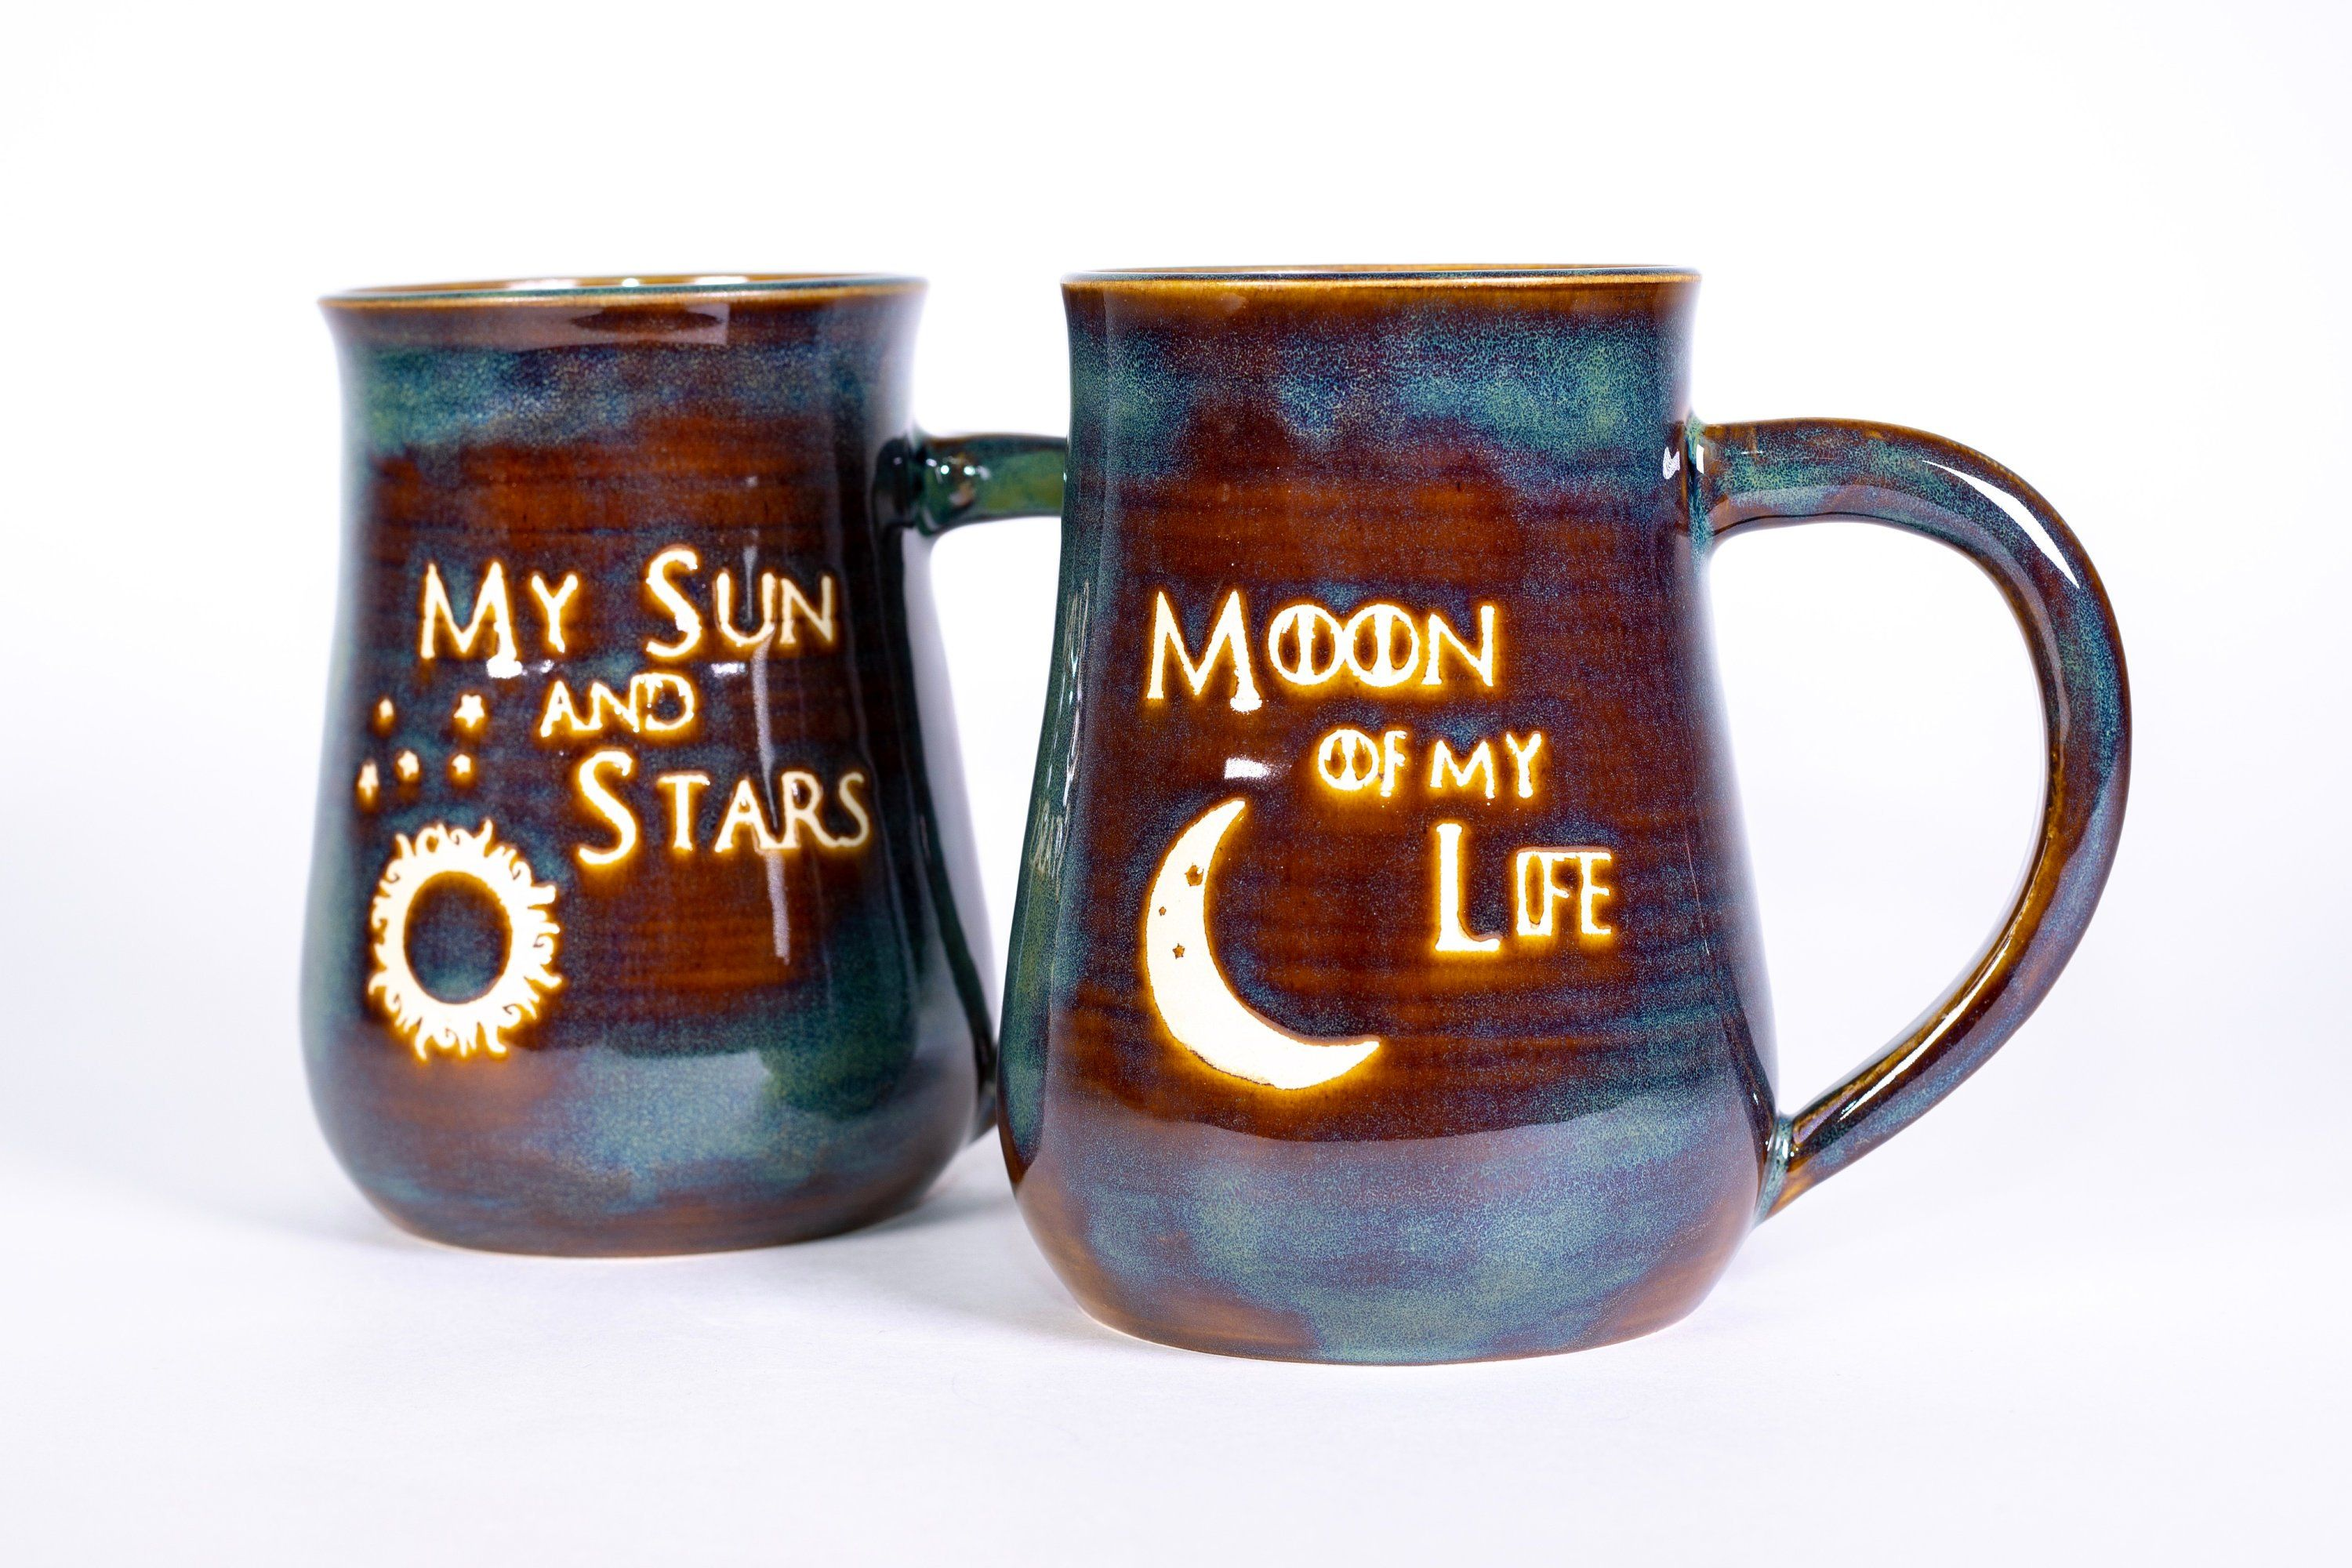 My Sun and Stars and Moon of My Life Handmade Pottery